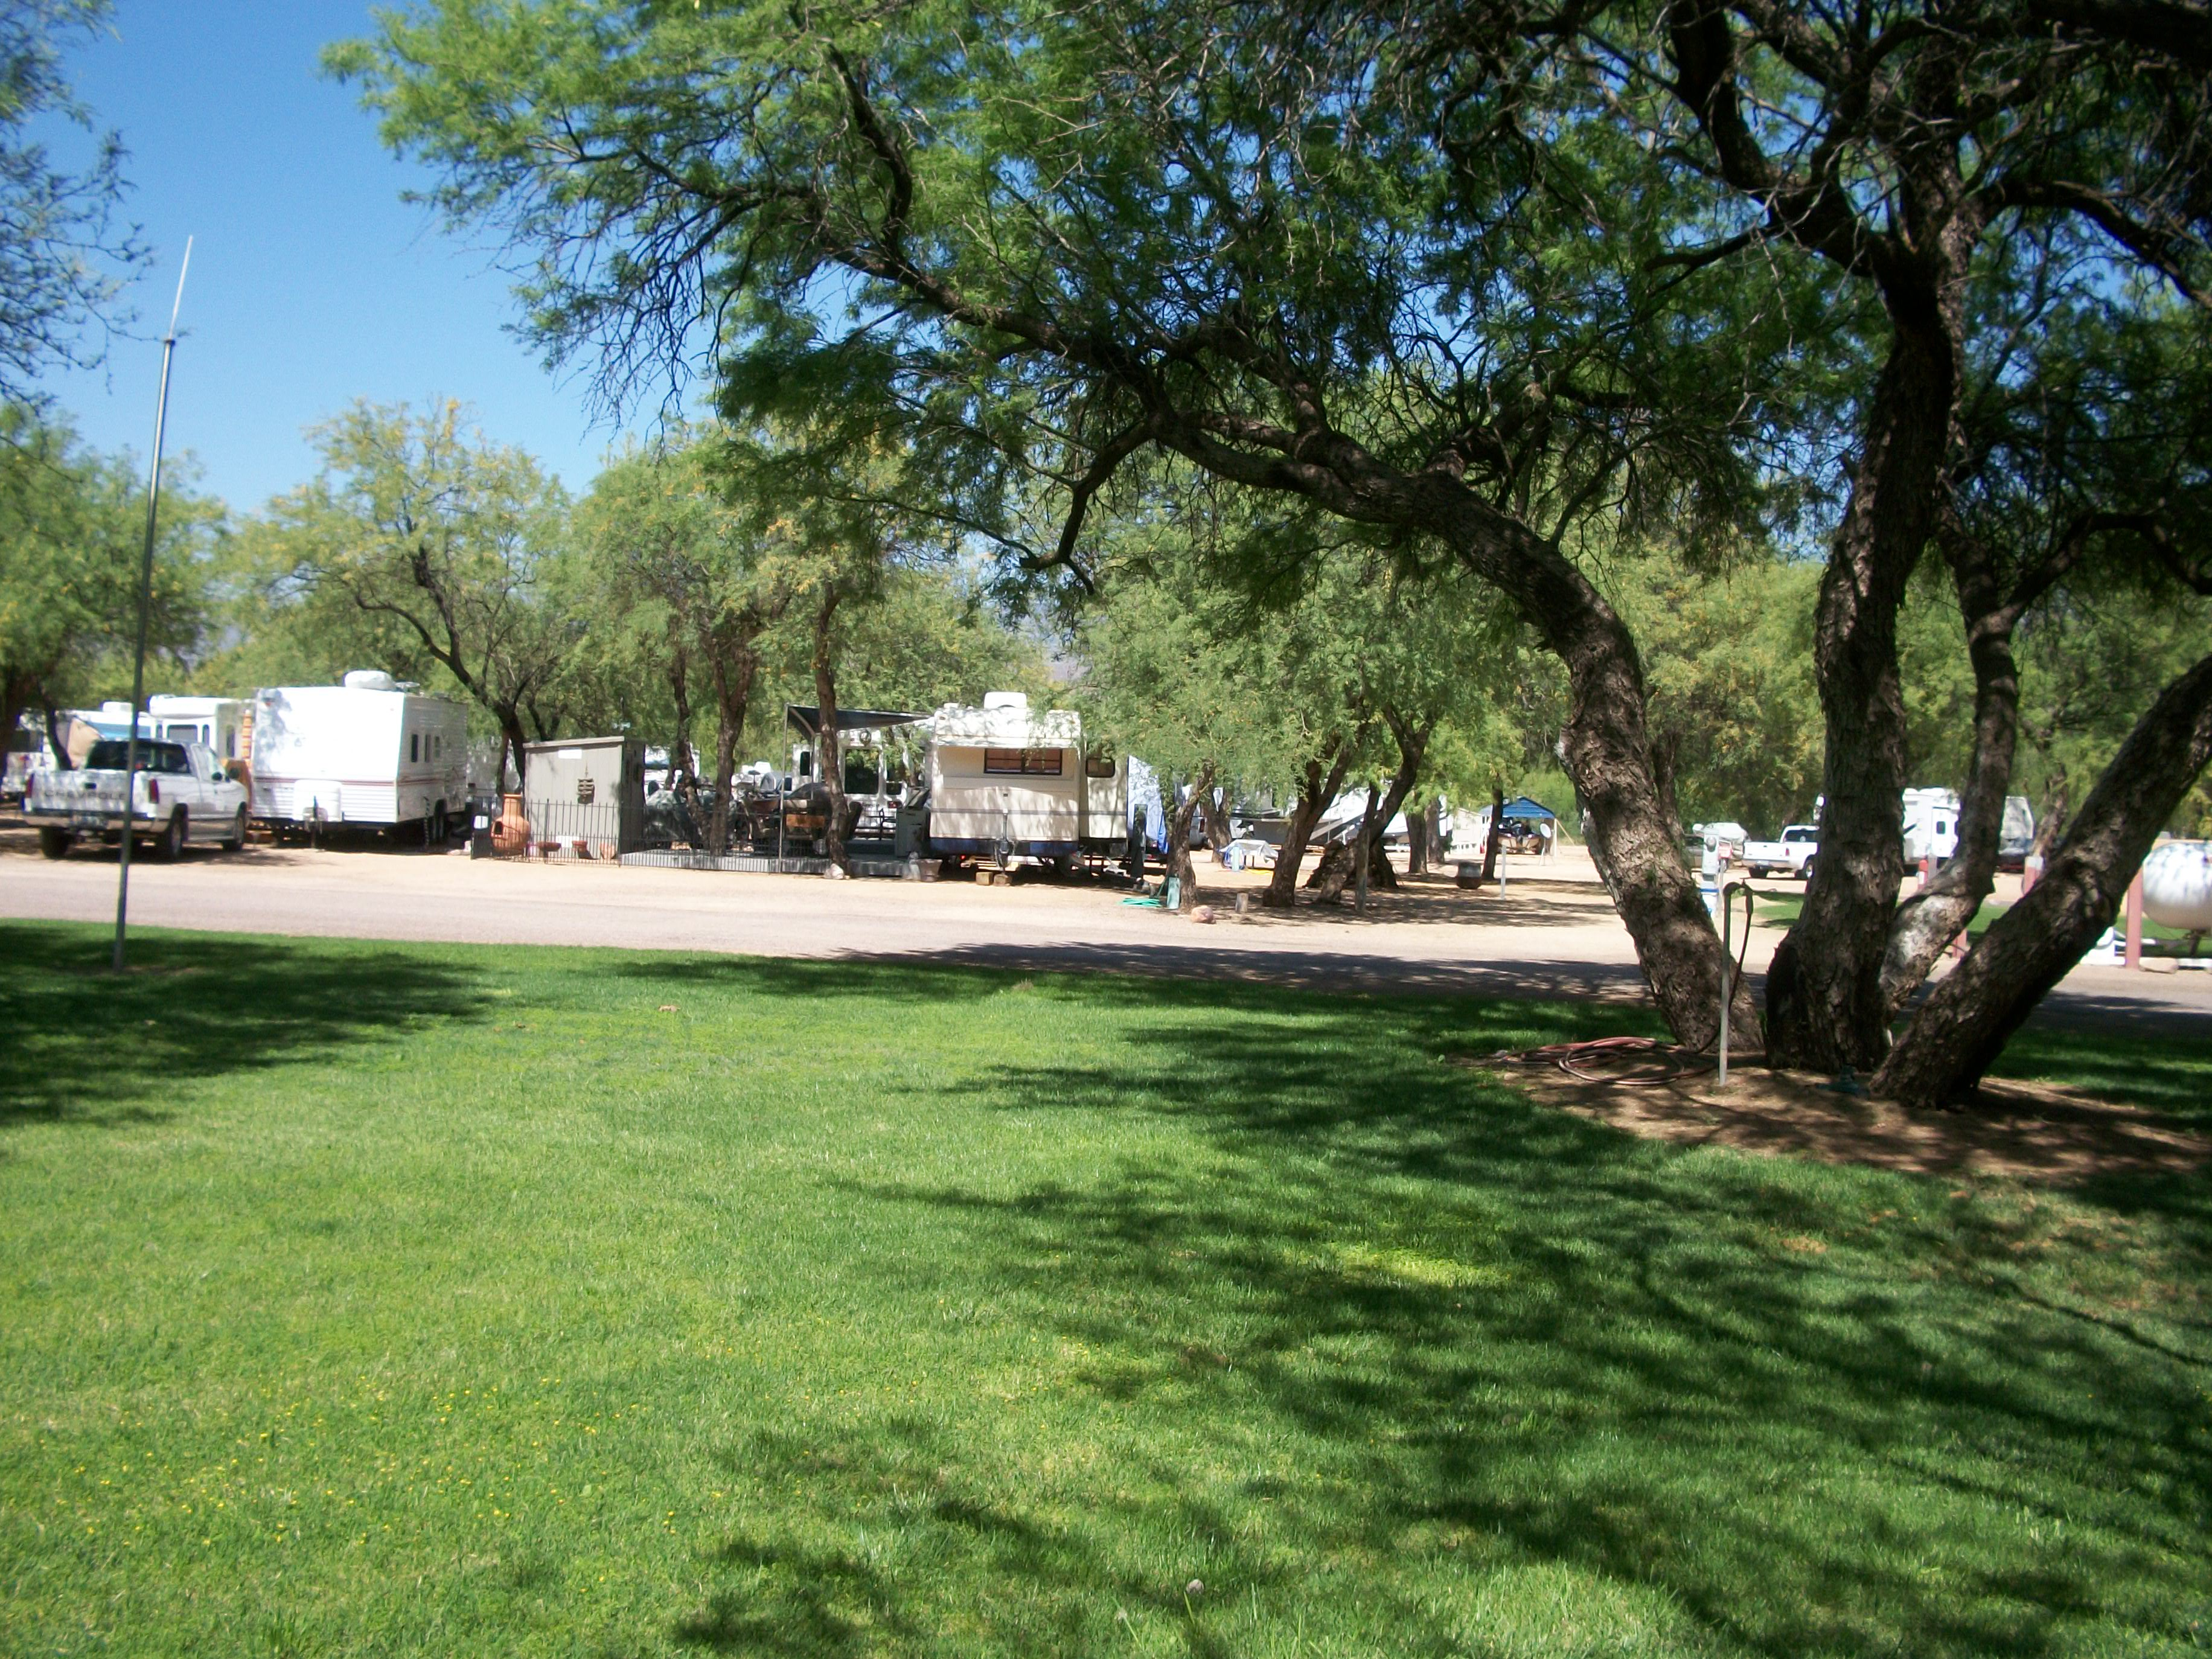 tonto basin personals Page 2 | find homes for sale and real estate in tonto basin, az at realtorcom® search and filter tonto basin homes by price, beds, baths and property type.